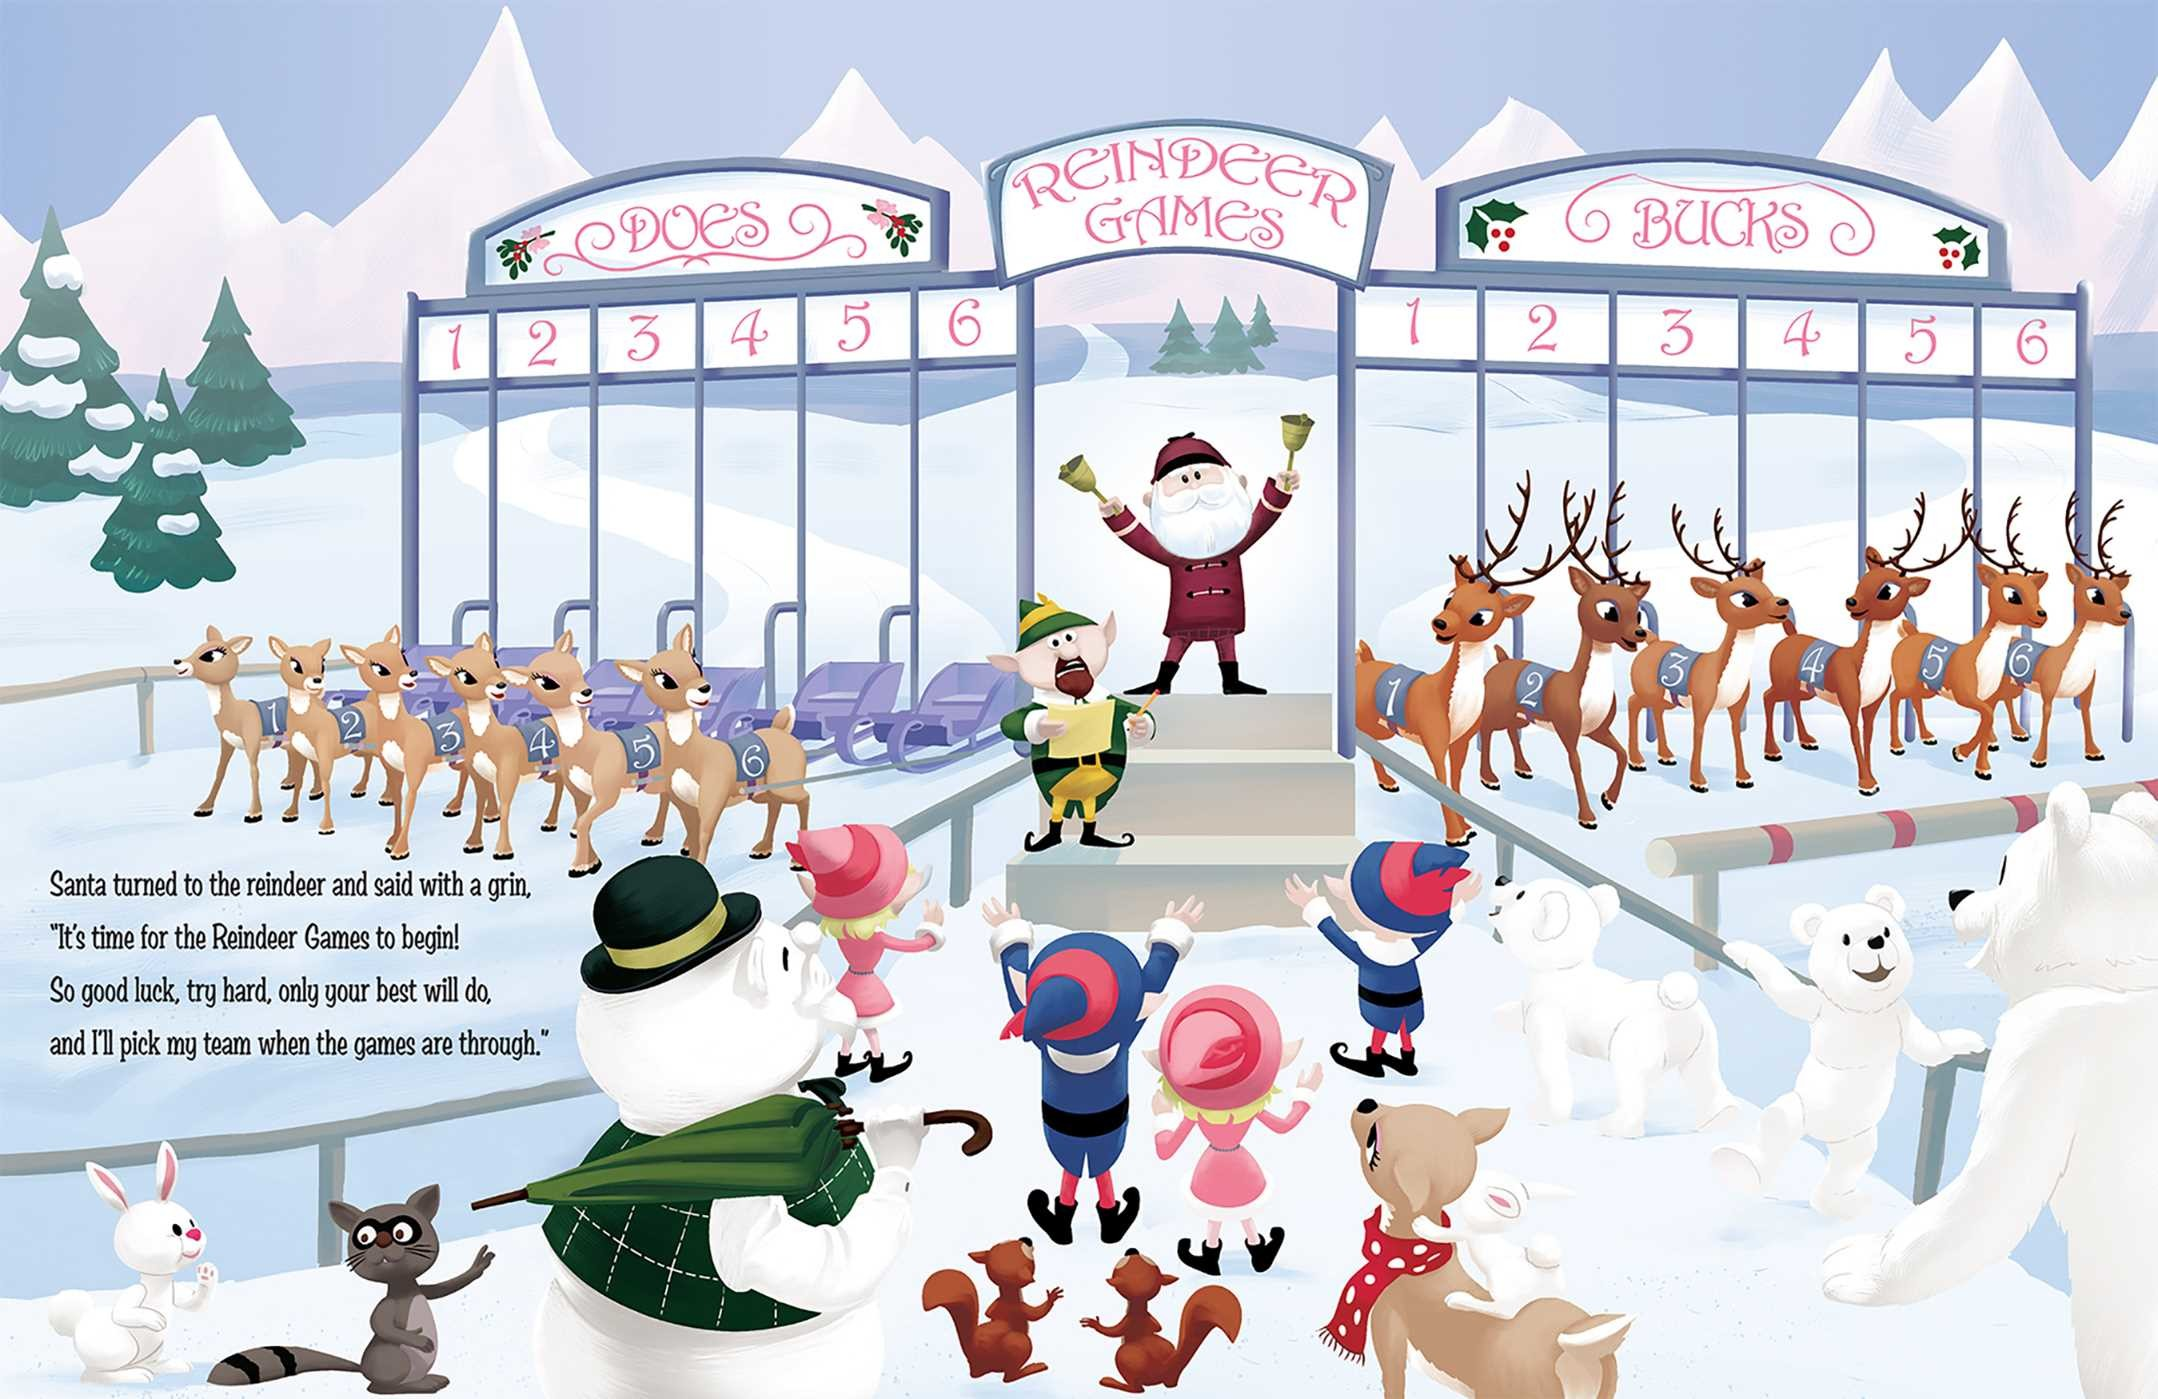 T e a m rudolph and the reindeer games 9781684120789.in01